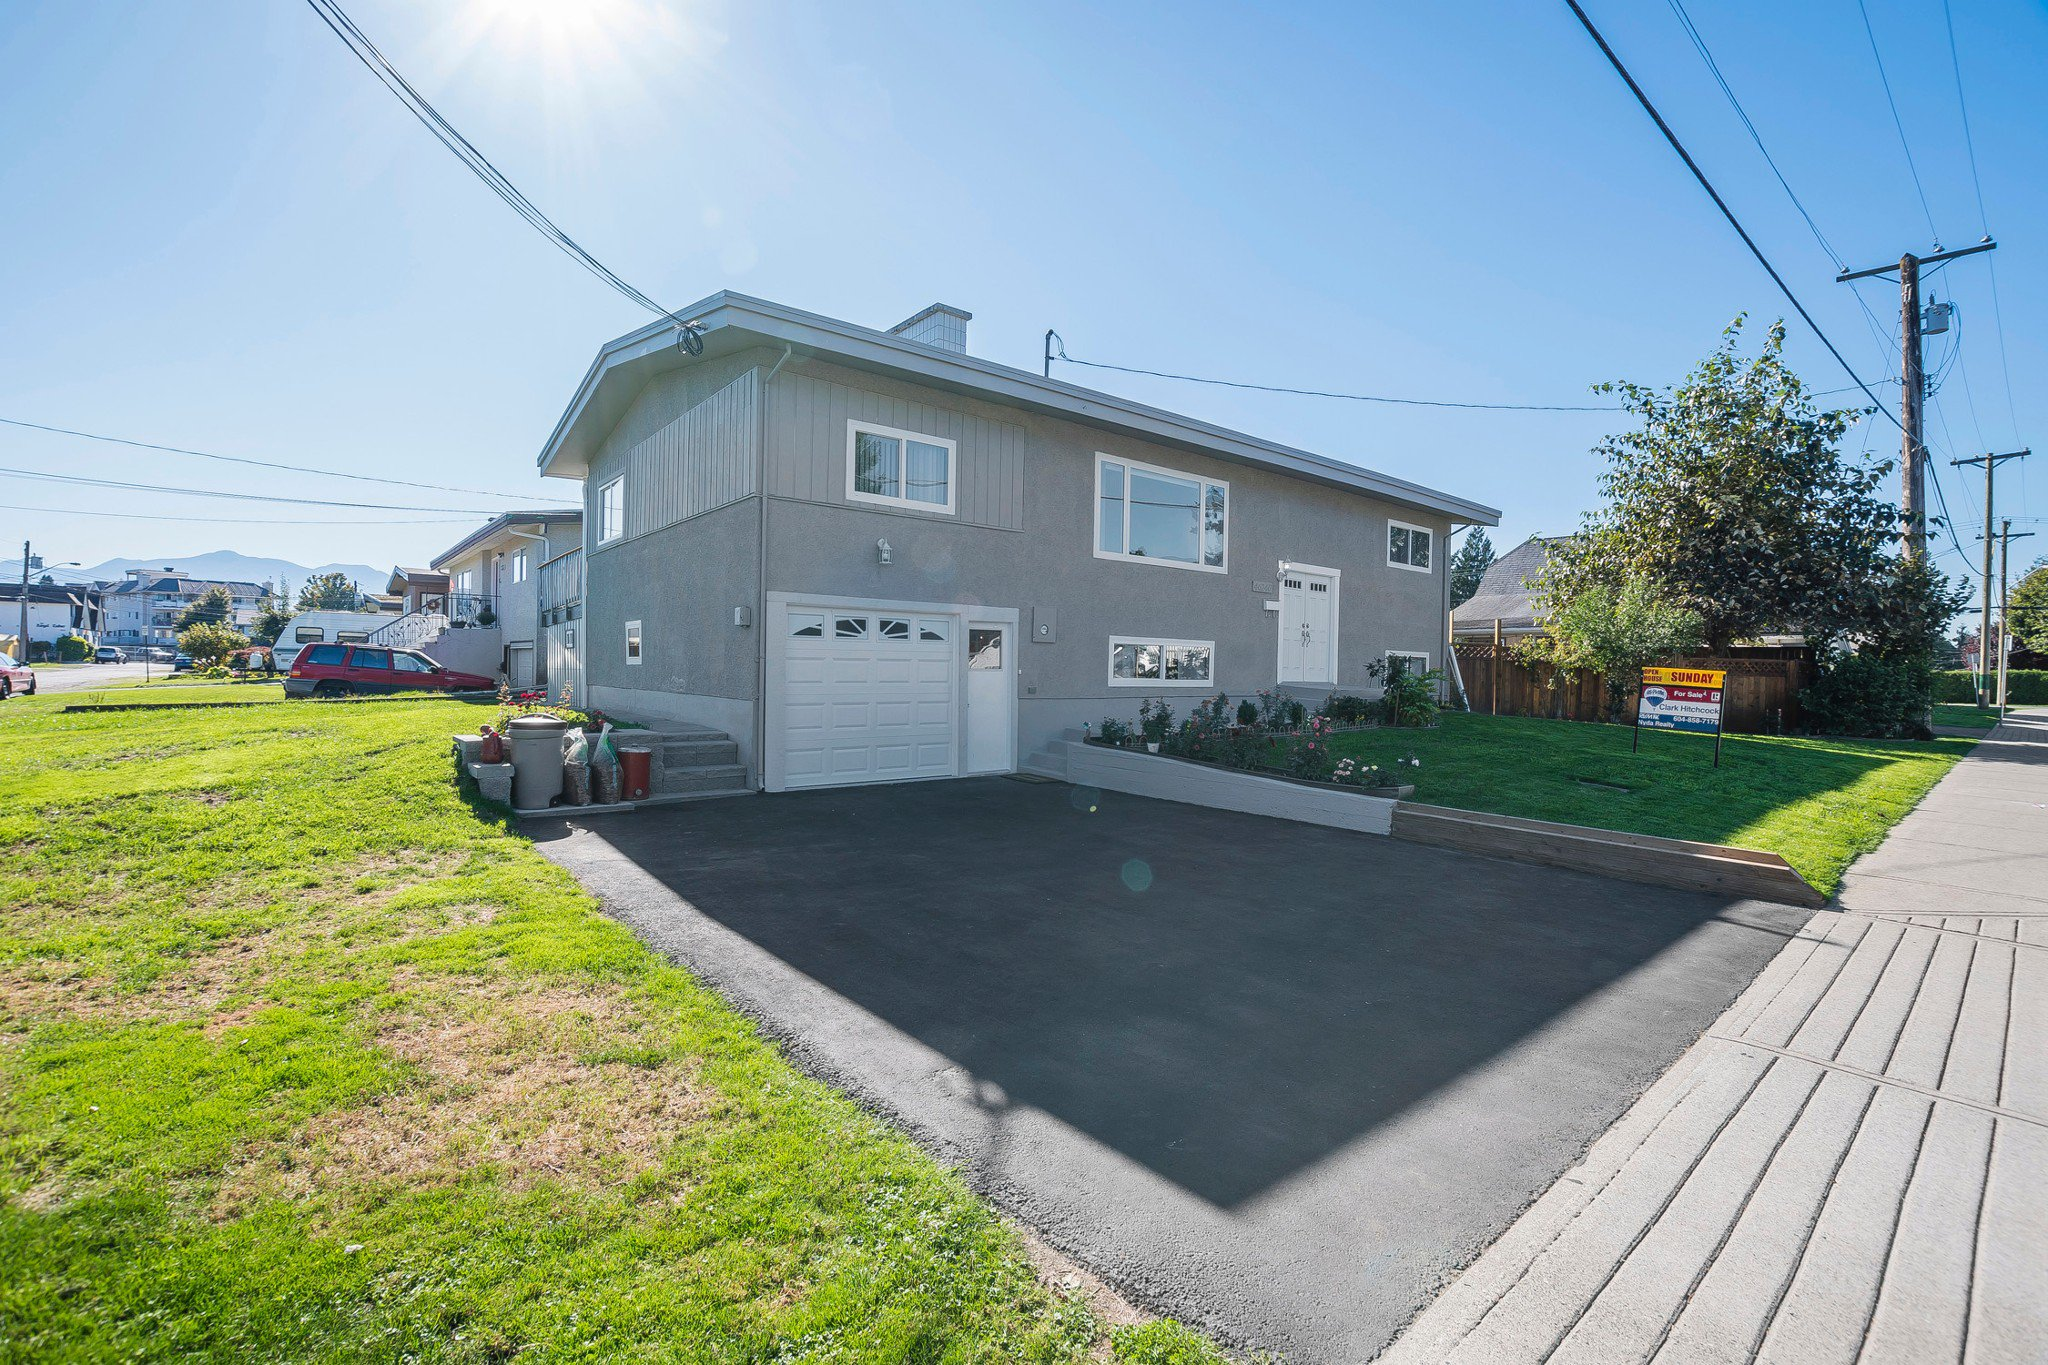 Photo 1: Photos: 46240 Reece: Chilliwack House for sale : MLS®# R2211935